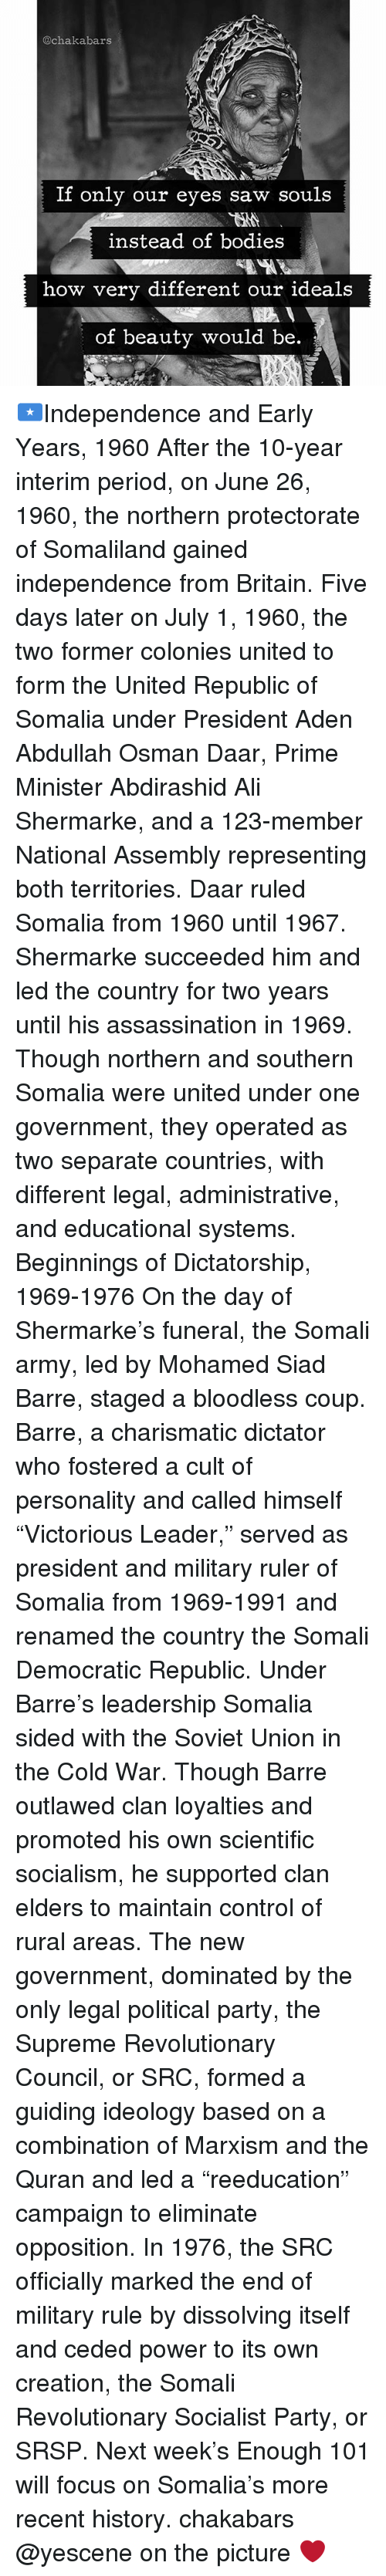 """June 26: @ch akabars  If only our eyes saw souls  instead of bodies  how very different our ideals  of beauty would be 🇸🇴Independence and Early Years, 1960 After the 10-year interim period, on June 26, 1960, the northern protectorate of Somaliland gained independence from Britain. Five days later on July 1, 1960, the two former colonies united to form the United Republic of Somalia under President Aden Abdullah Osman Daar, Prime Minister Abdirashid Ali Shermarke, and a 123-member National Assembly representing both territories. Daar ruled Somalia from 1960 until 1967. Shermarke succeeded him and led the country for two years until his assassination in 1969. Though northern and southern Somalia were united under one government, they operated as two separate countries, with different legal, administrative, and educational systems. Beginnings of Dictatorship, 1969-1976 On the day of Shermarke's funeral, the Somali army, led by Mohamed Siad Barre, staged a bloodless coup. Barre, a charismatic dictator who fostered a cult of personality and called himself """"Victorious Leader,"""" served as president and military ruler of Somalia from 1969-1991 and renamed the country the Somali Democratic Republic. Under Barre's leadership Somalia sided with the Soviet Union in the Cold War. Though Barre outlawed clan loyalties and promoted his own scientific socialism, he supported clan elders to maintain control of rural areas. The new government, dominated by the only legal political party, the Supreme Revolutionary Council, or SRC, formed a guiding ideology based on a combination of Marxism and the Quran and led a """"reeducation"""" campaign to eliminate opposition. In 1976, the SRC officially marked the end of military rule by dissolving itself and ceded power to its own creation, the Somali Revolutionary Socialist Party, or SRSP. Next week's Enough 101 will focus on Somalia's more recent history. chakabars @yescene on the picture ❤"""